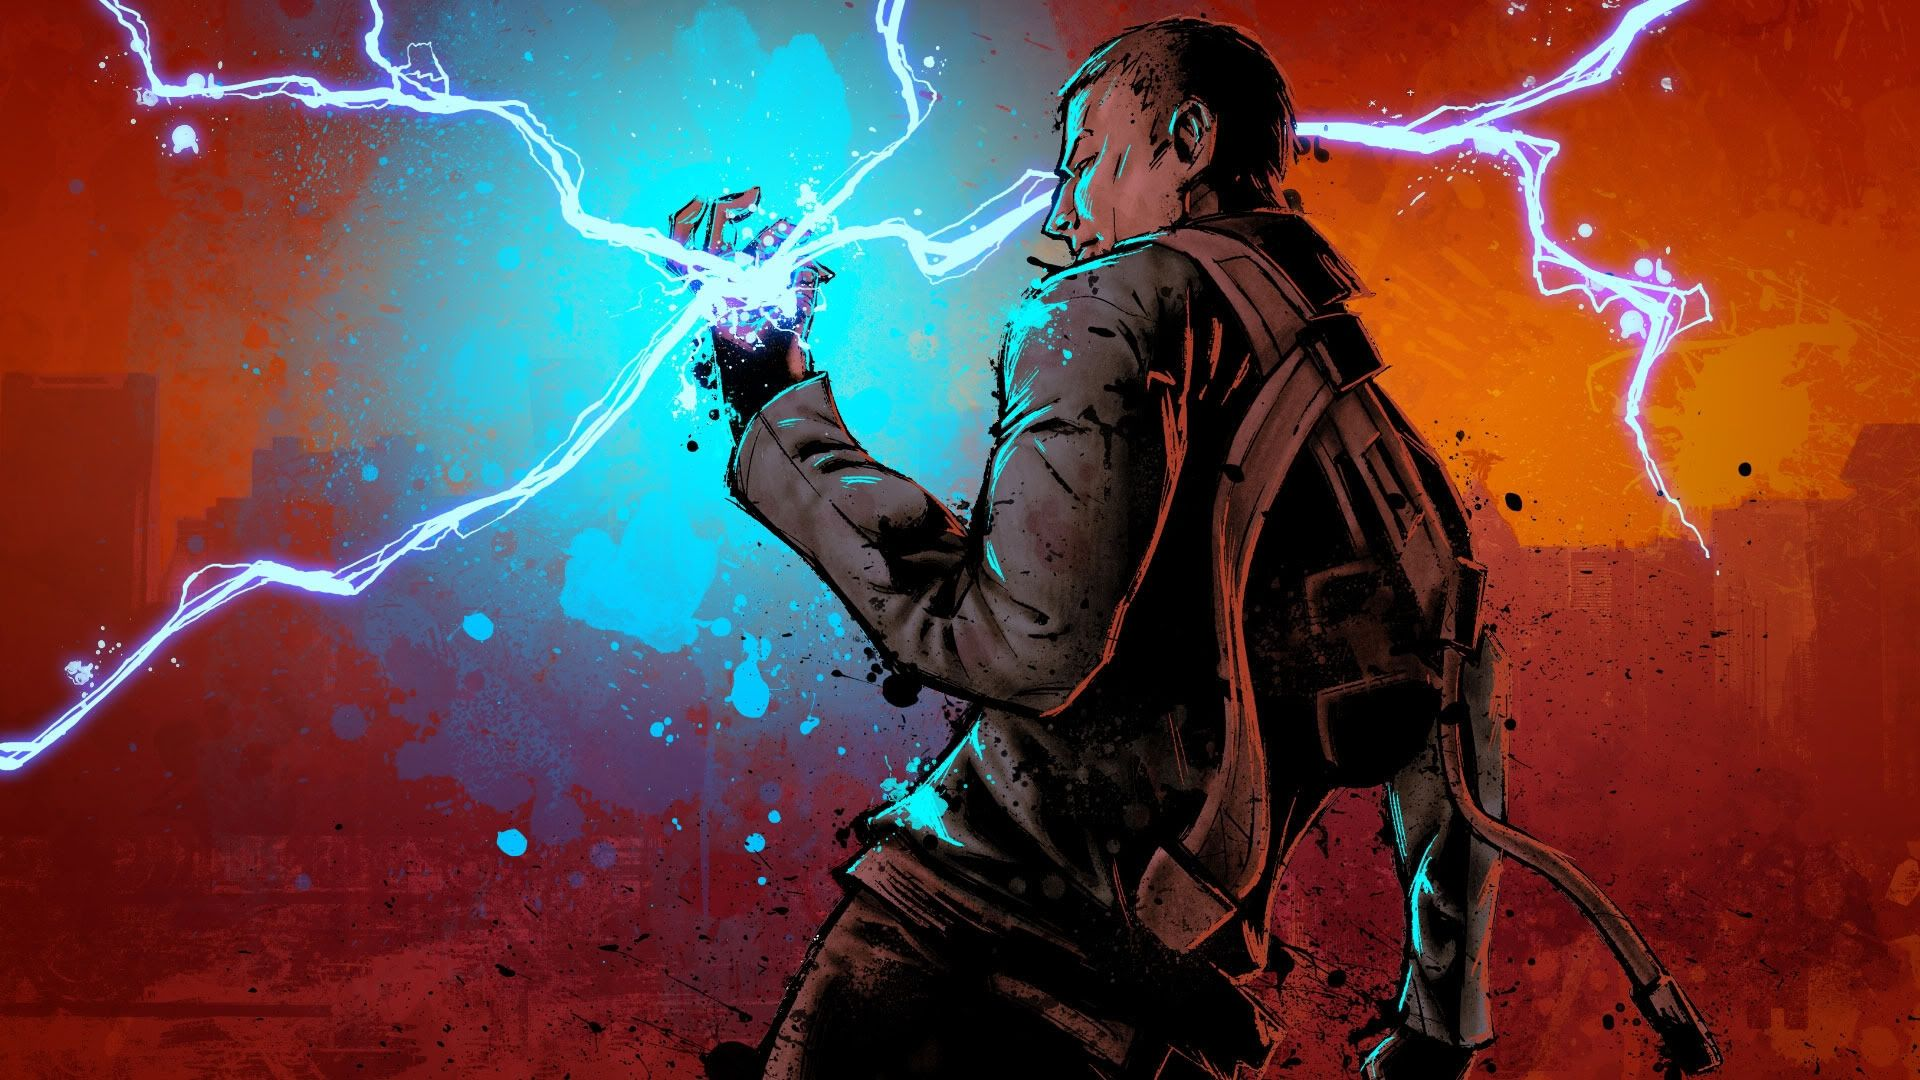 Wallpaper Infamous Picture Cole Electricity Hand Download Image Wallpaper